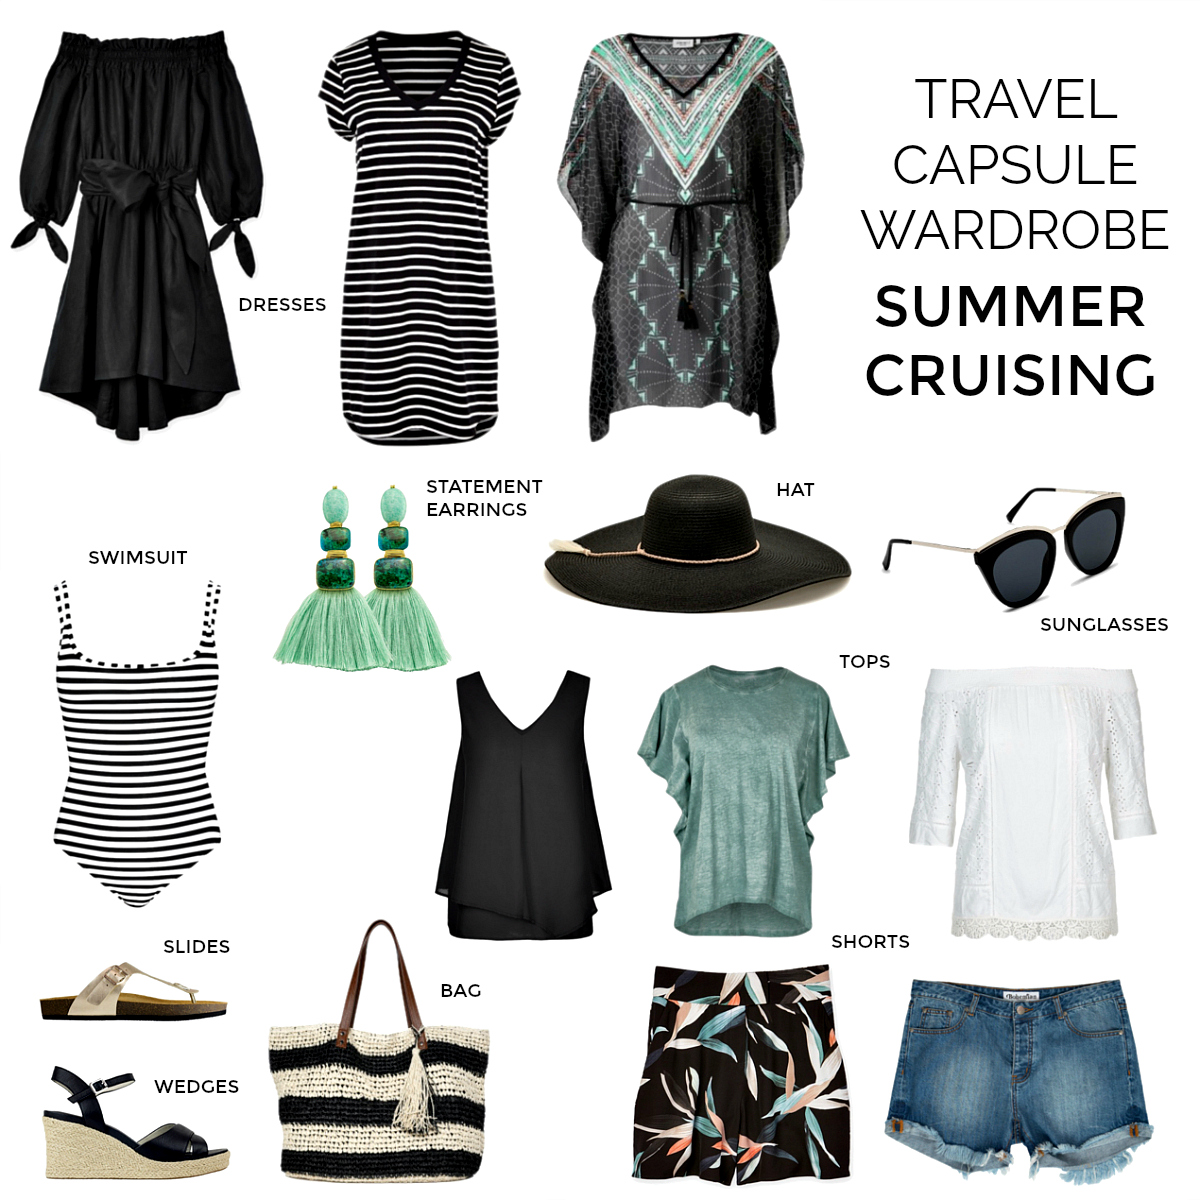 2ad050f490 12 tips for how to pack and plan for your next cruise holiday